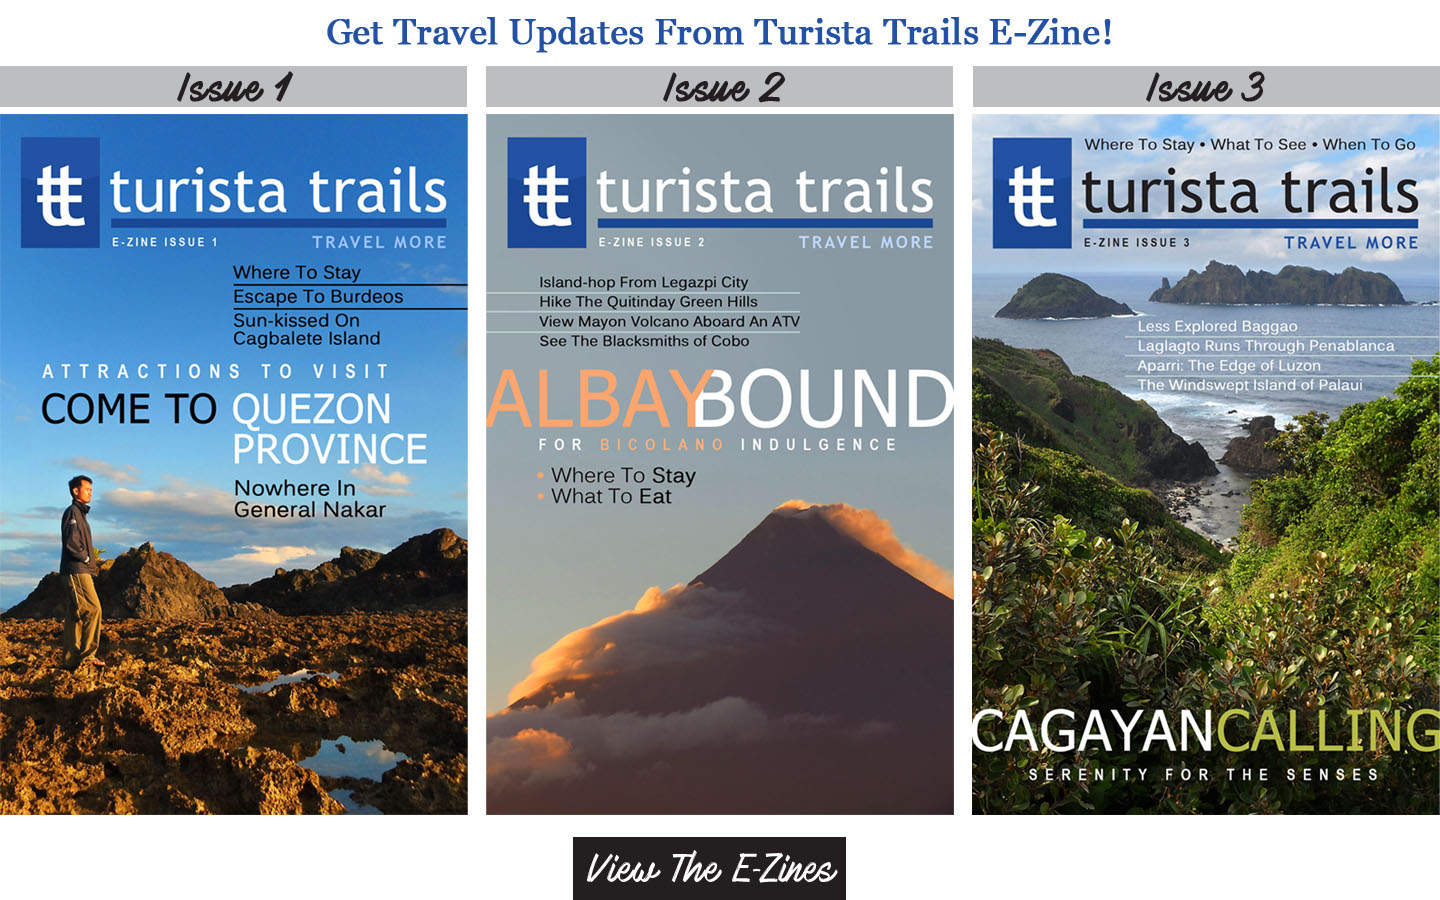 Get Travel Updates From The Turista Trails E-Zine!